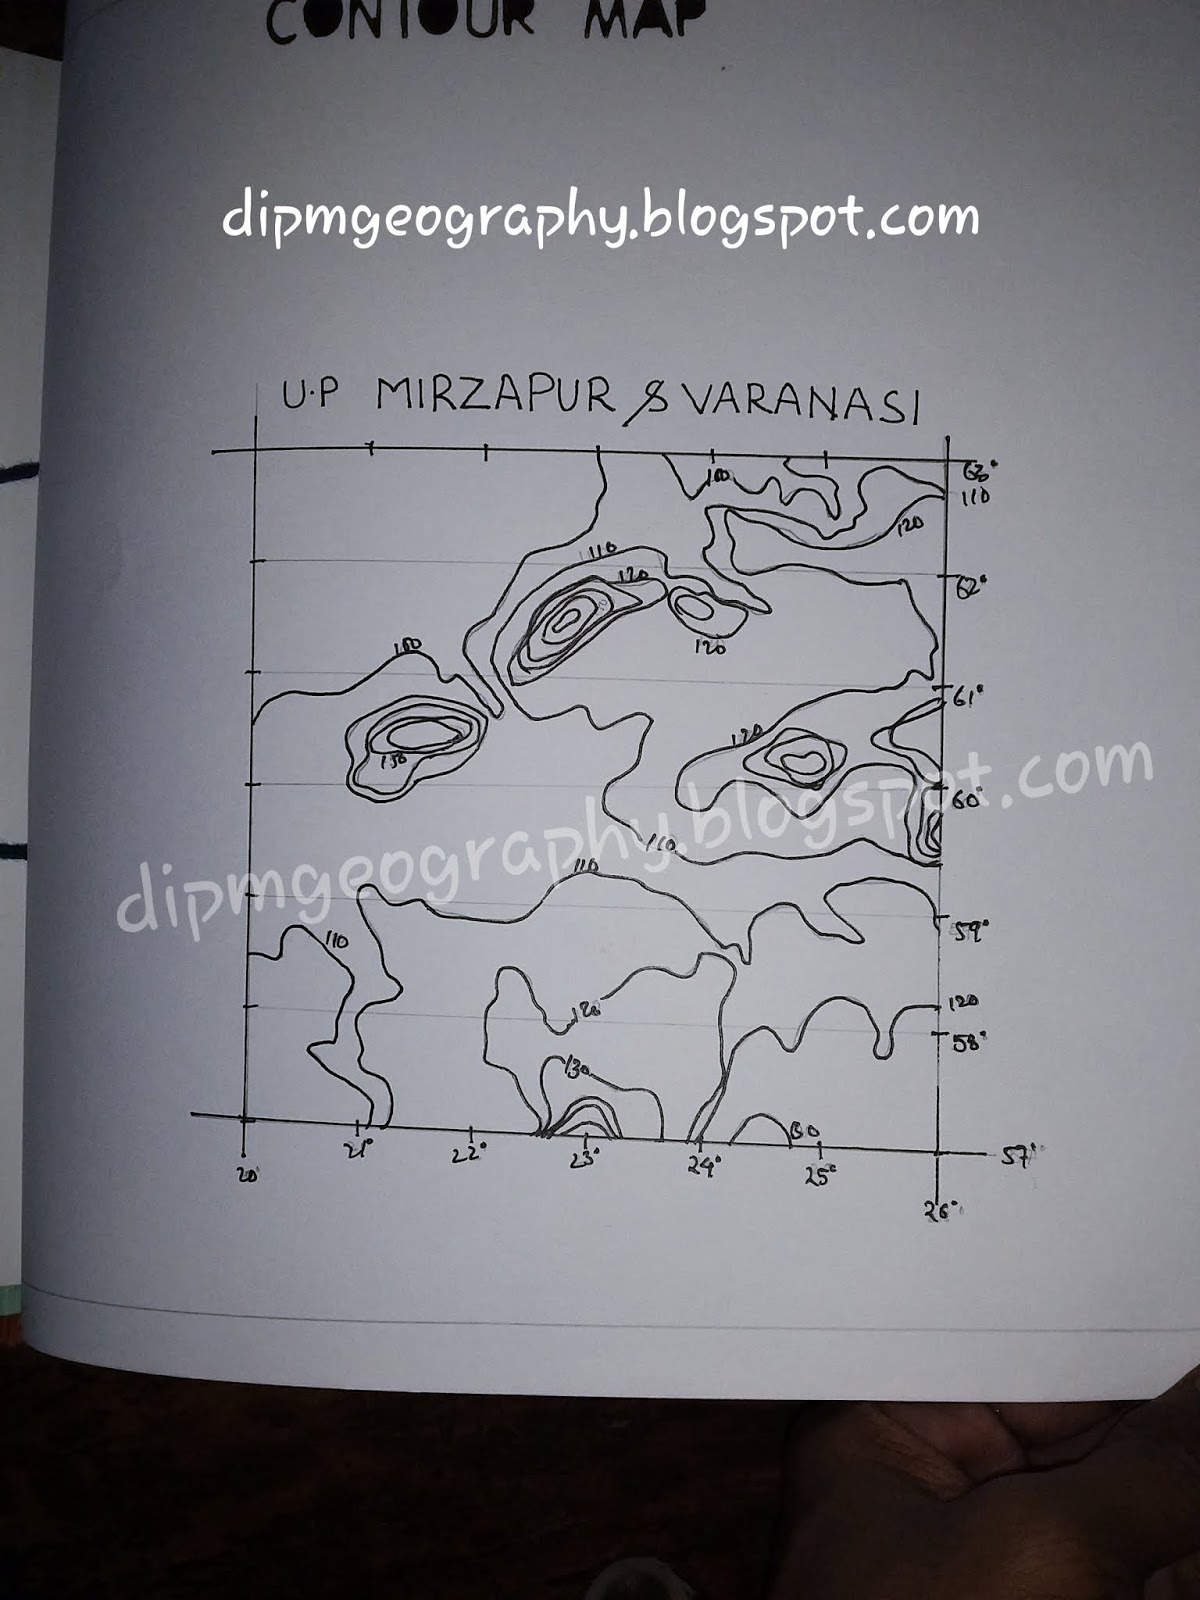 Dipm Geography 2 Contour Map And Profiles Making